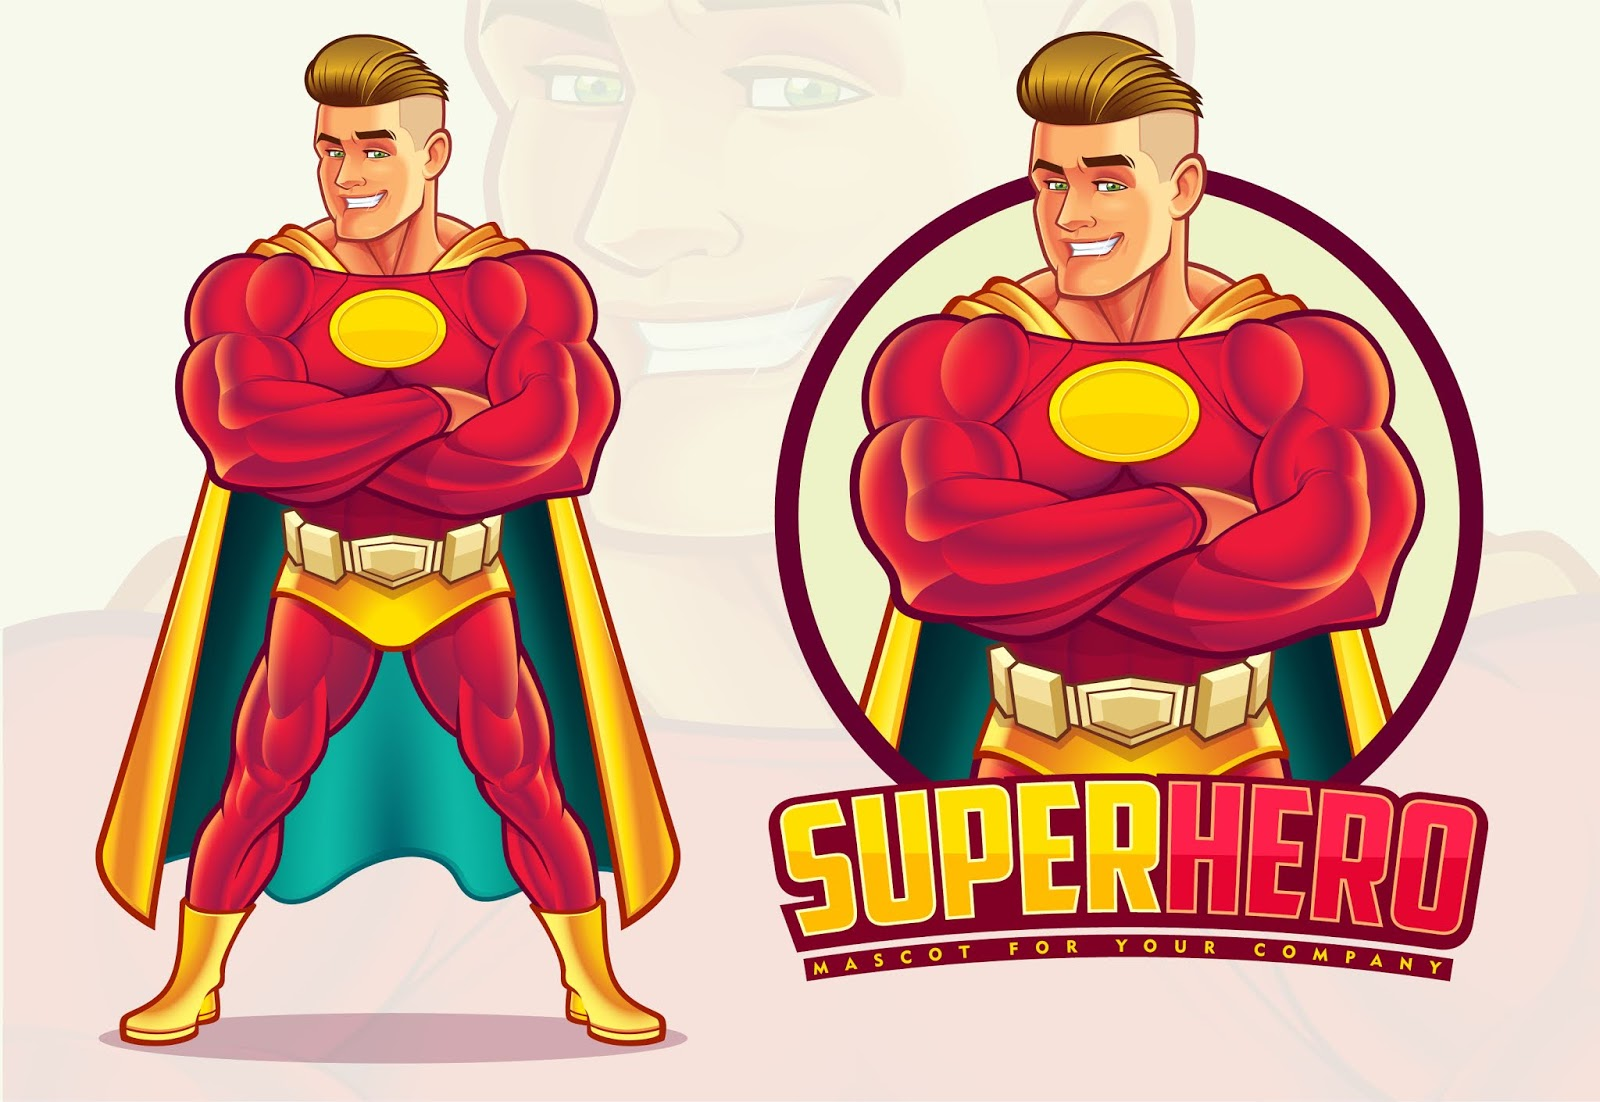 Handsome Superhero Mascot Free Download Vector CDR, AI, EPS and PNG Formats